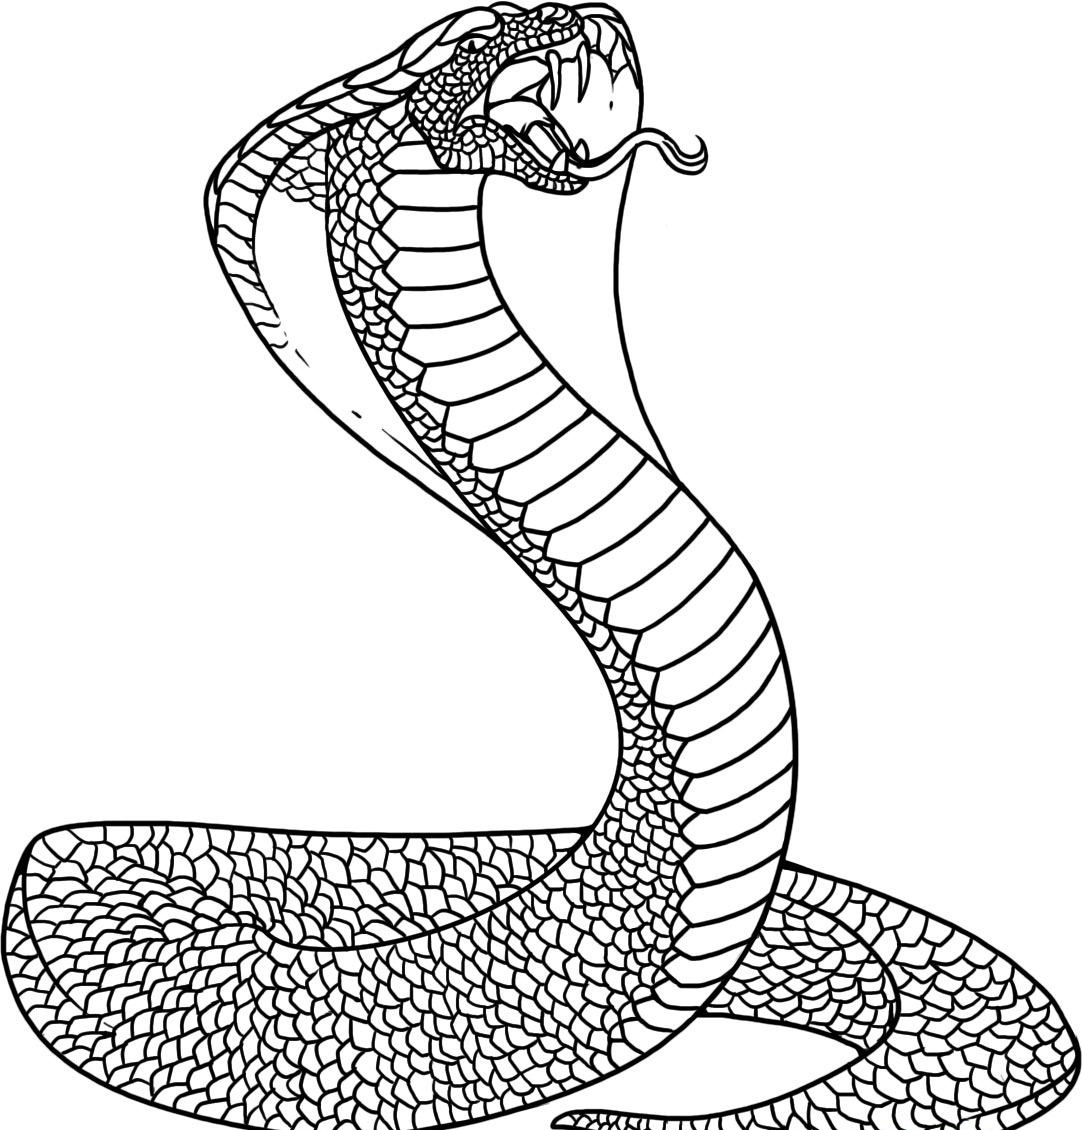 Spotted eagle ray coloring pages - Coloring Page Of Snake Image